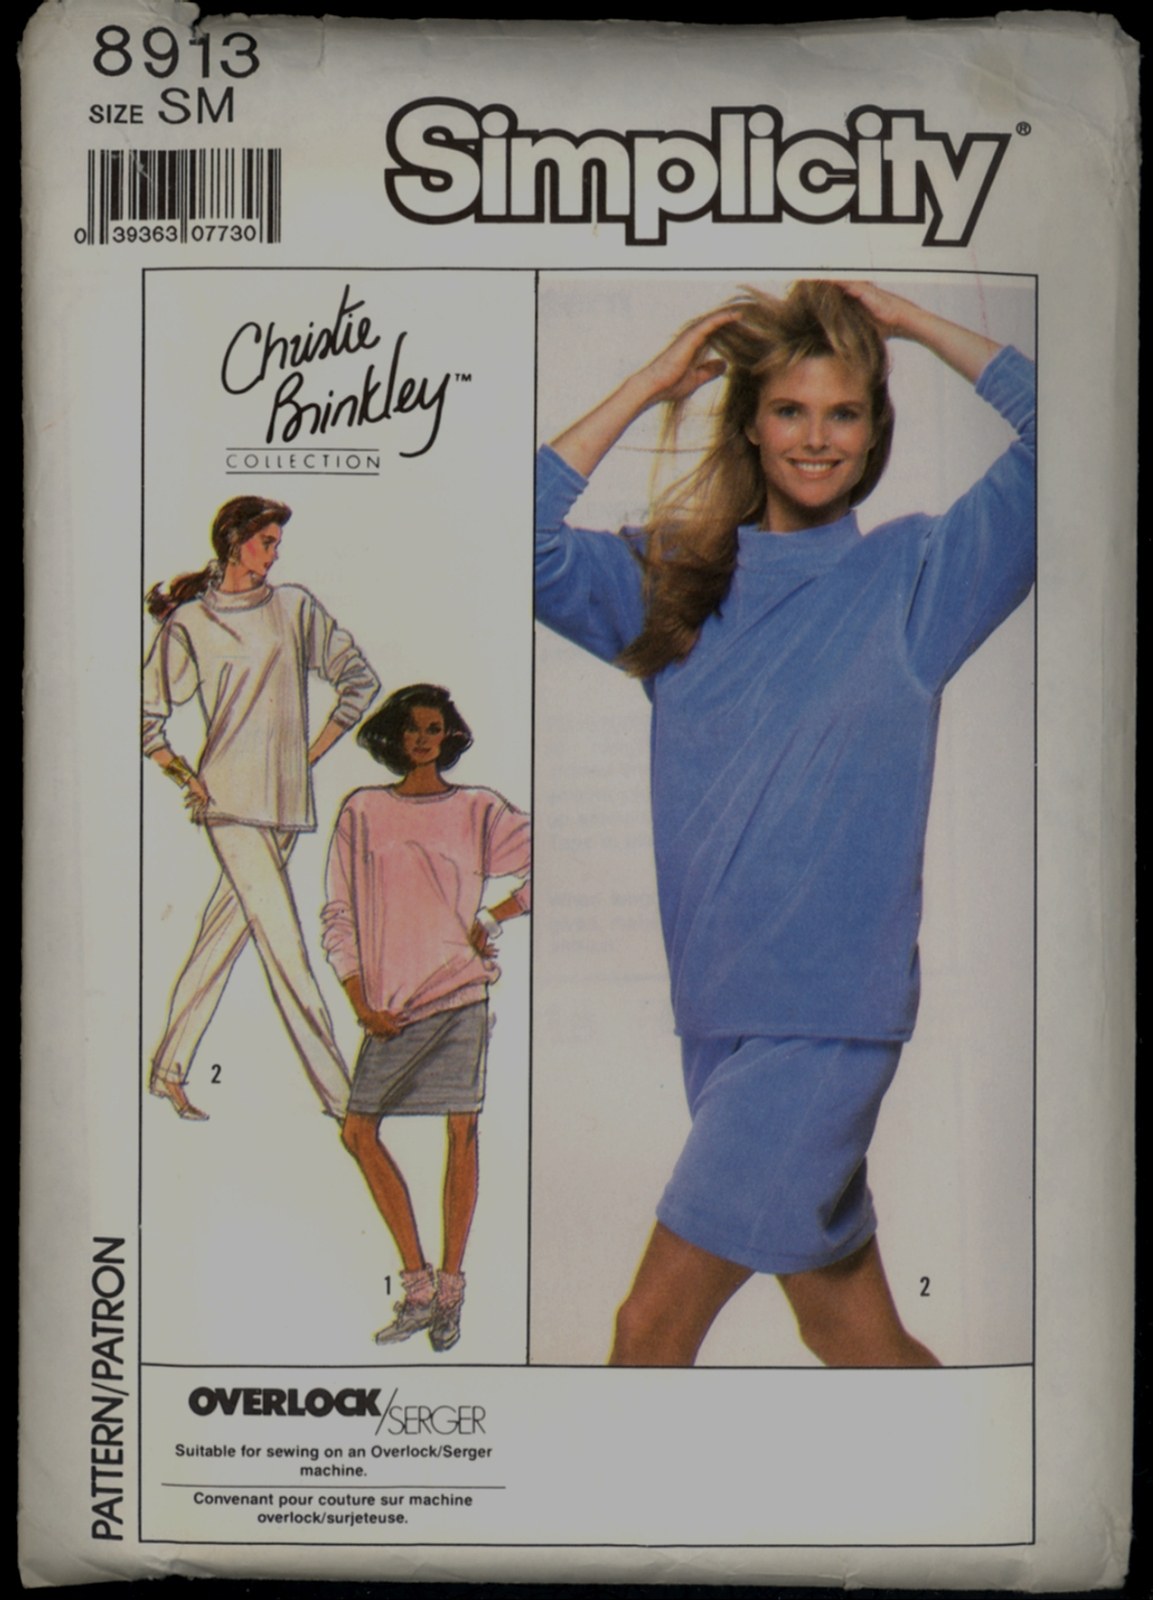 Auction 3512 s 8913 christie brinkley sm 1988 front